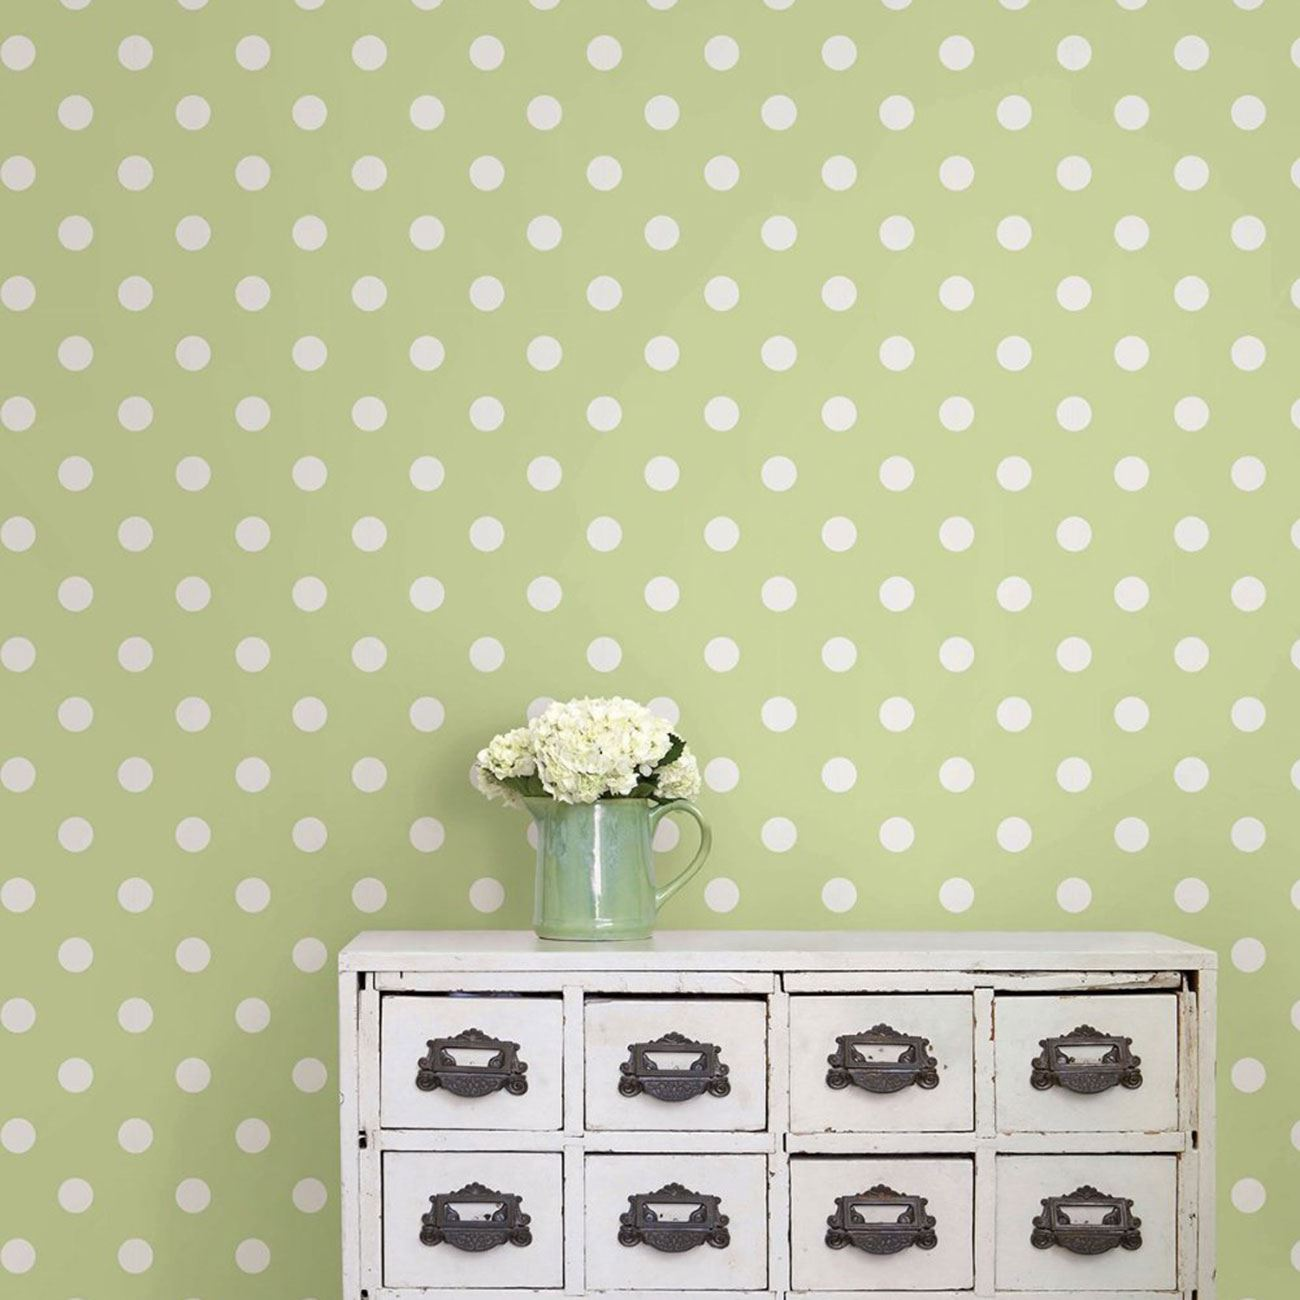 Beautiful Polka Dot Wall Decor Images - The Wall Art Decorations ...